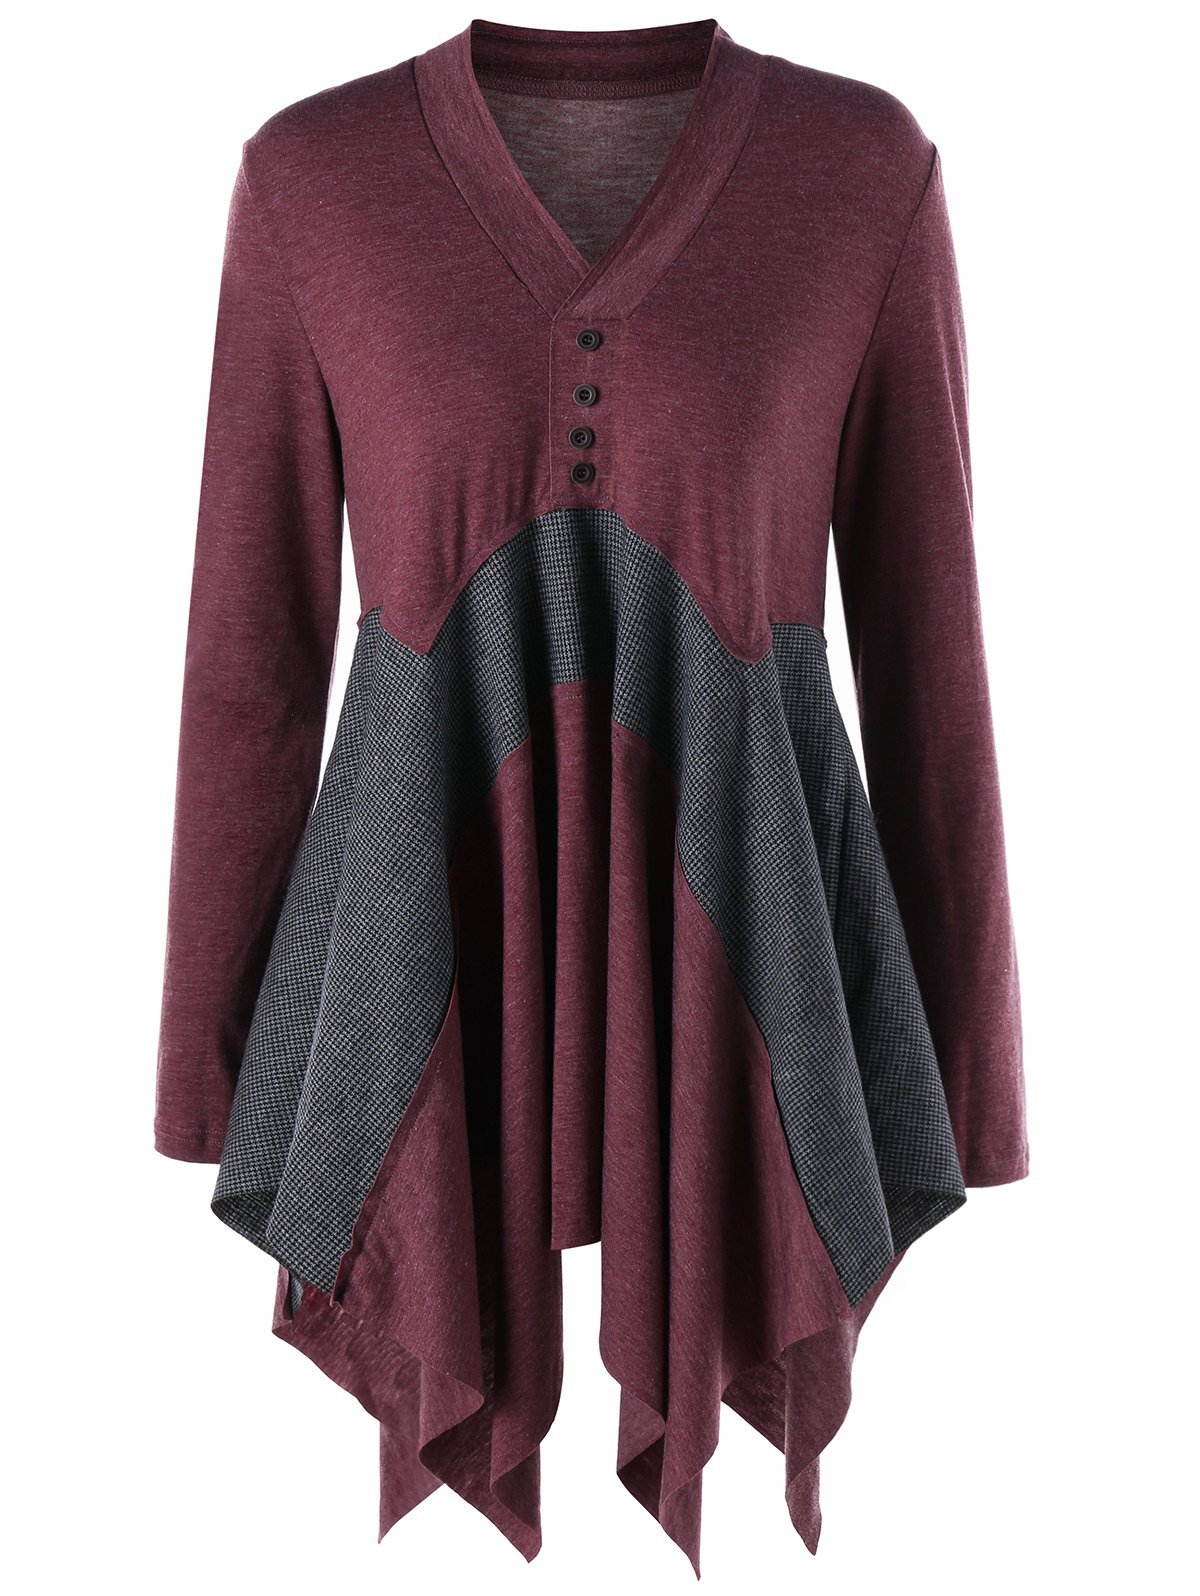 Long Asymmetric V Neck Long Sleeve TopWOMEN<br><br>Size: M; Color: GRAY AND RED; Material: Cotton Blends,Polyester,Spandex; Shirt Length: Long; Sleeve Length: Full; Collar: V-Neck; Style: Casual; Season: Fall,Spring; Pattern Type: Others; Weight: 0.3950kg; Package Contents: 1 x Top;